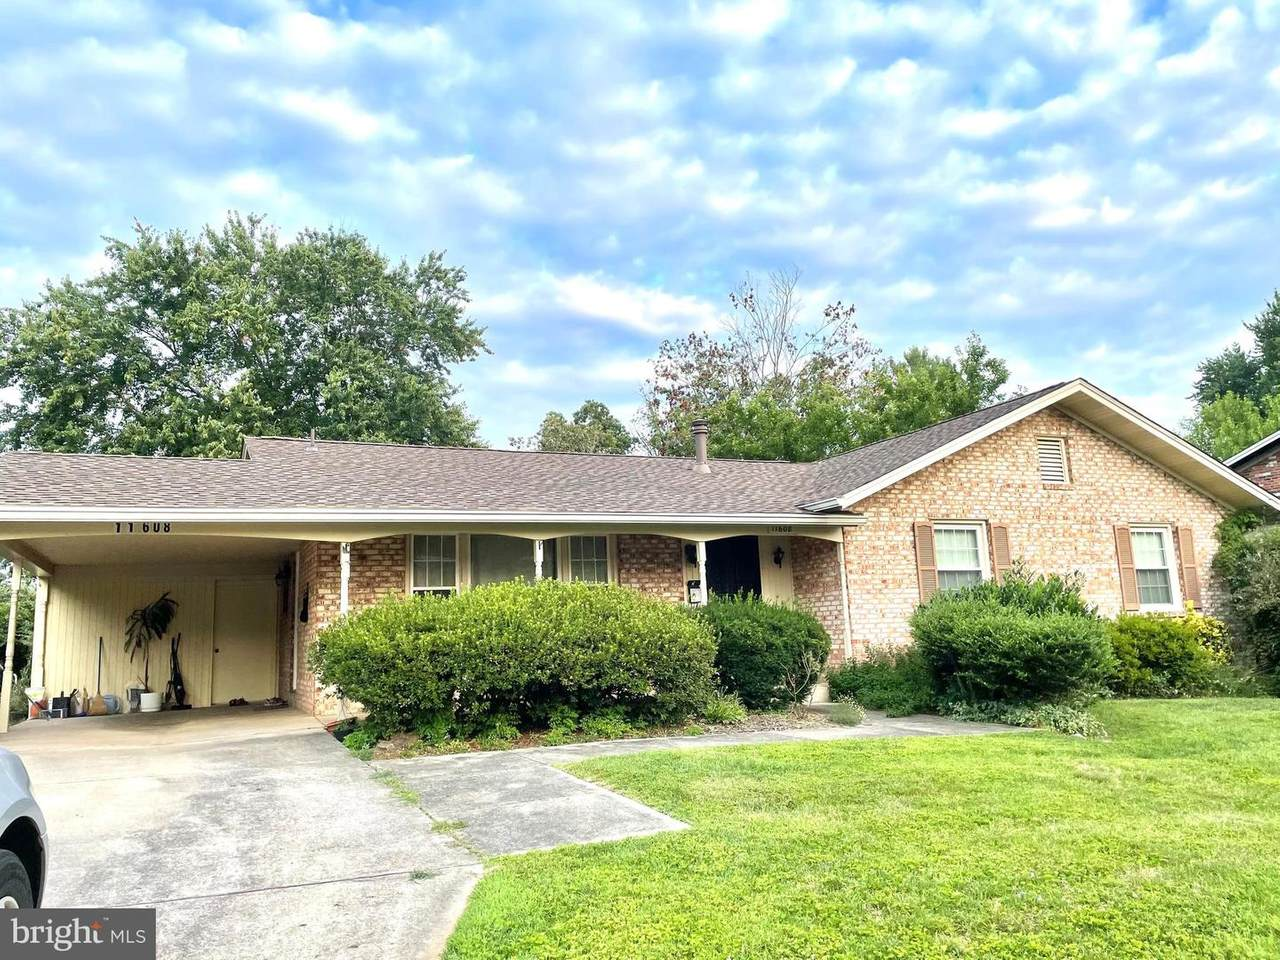 11608 Gowrie Court - Photo 1